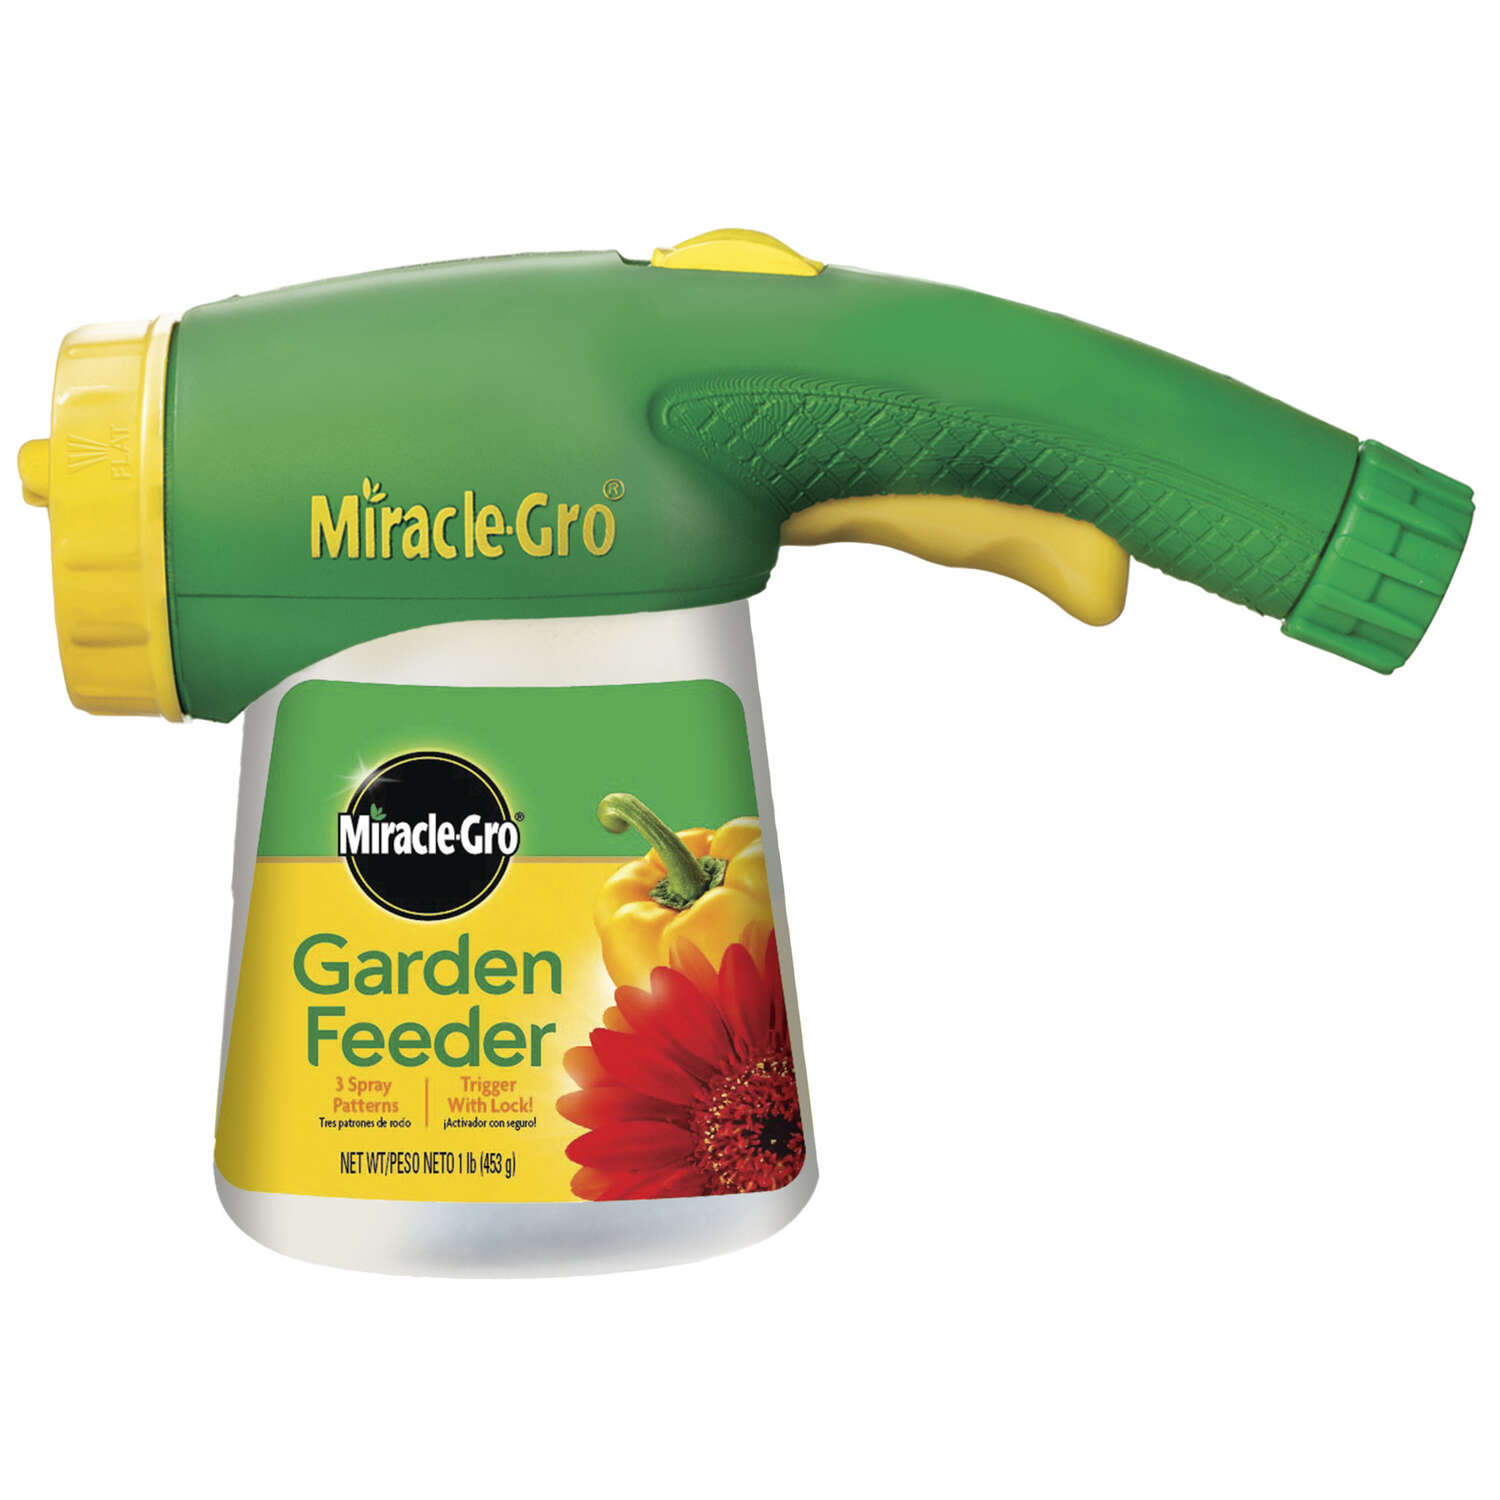 Miracle-Gro  Garden Feeder  Powder  Sprayer Starter Kit  1 lb.